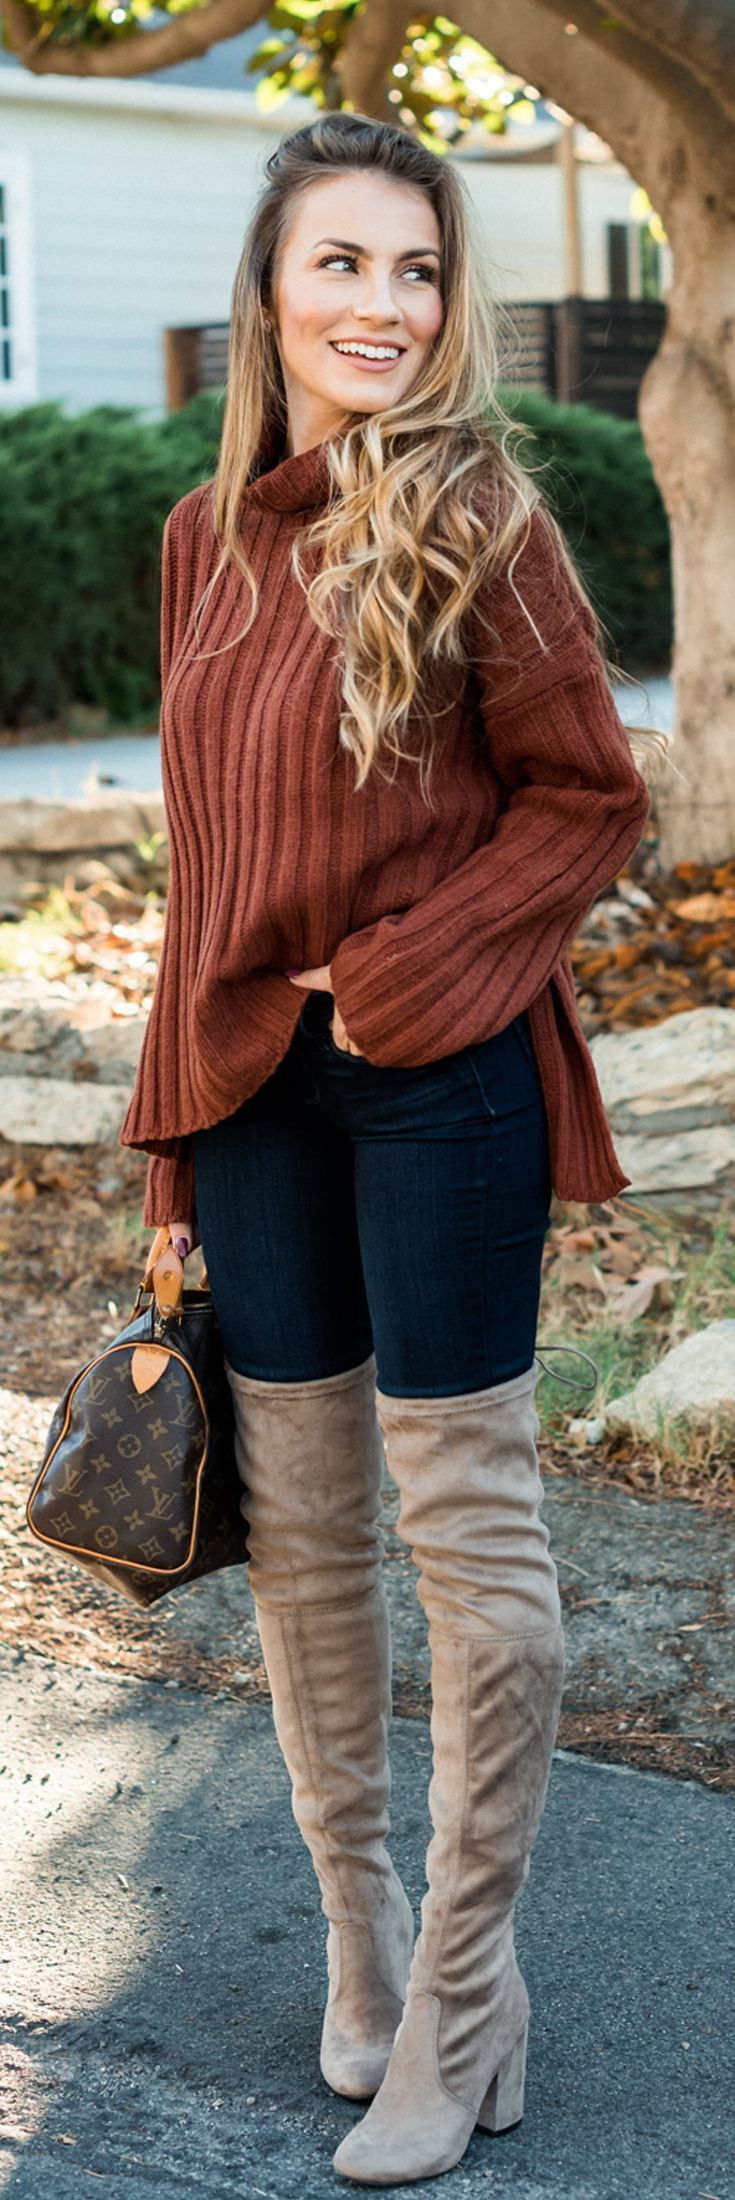 November Challenge: 30 Days of Thankfulness | Knee boot, Brown and ...